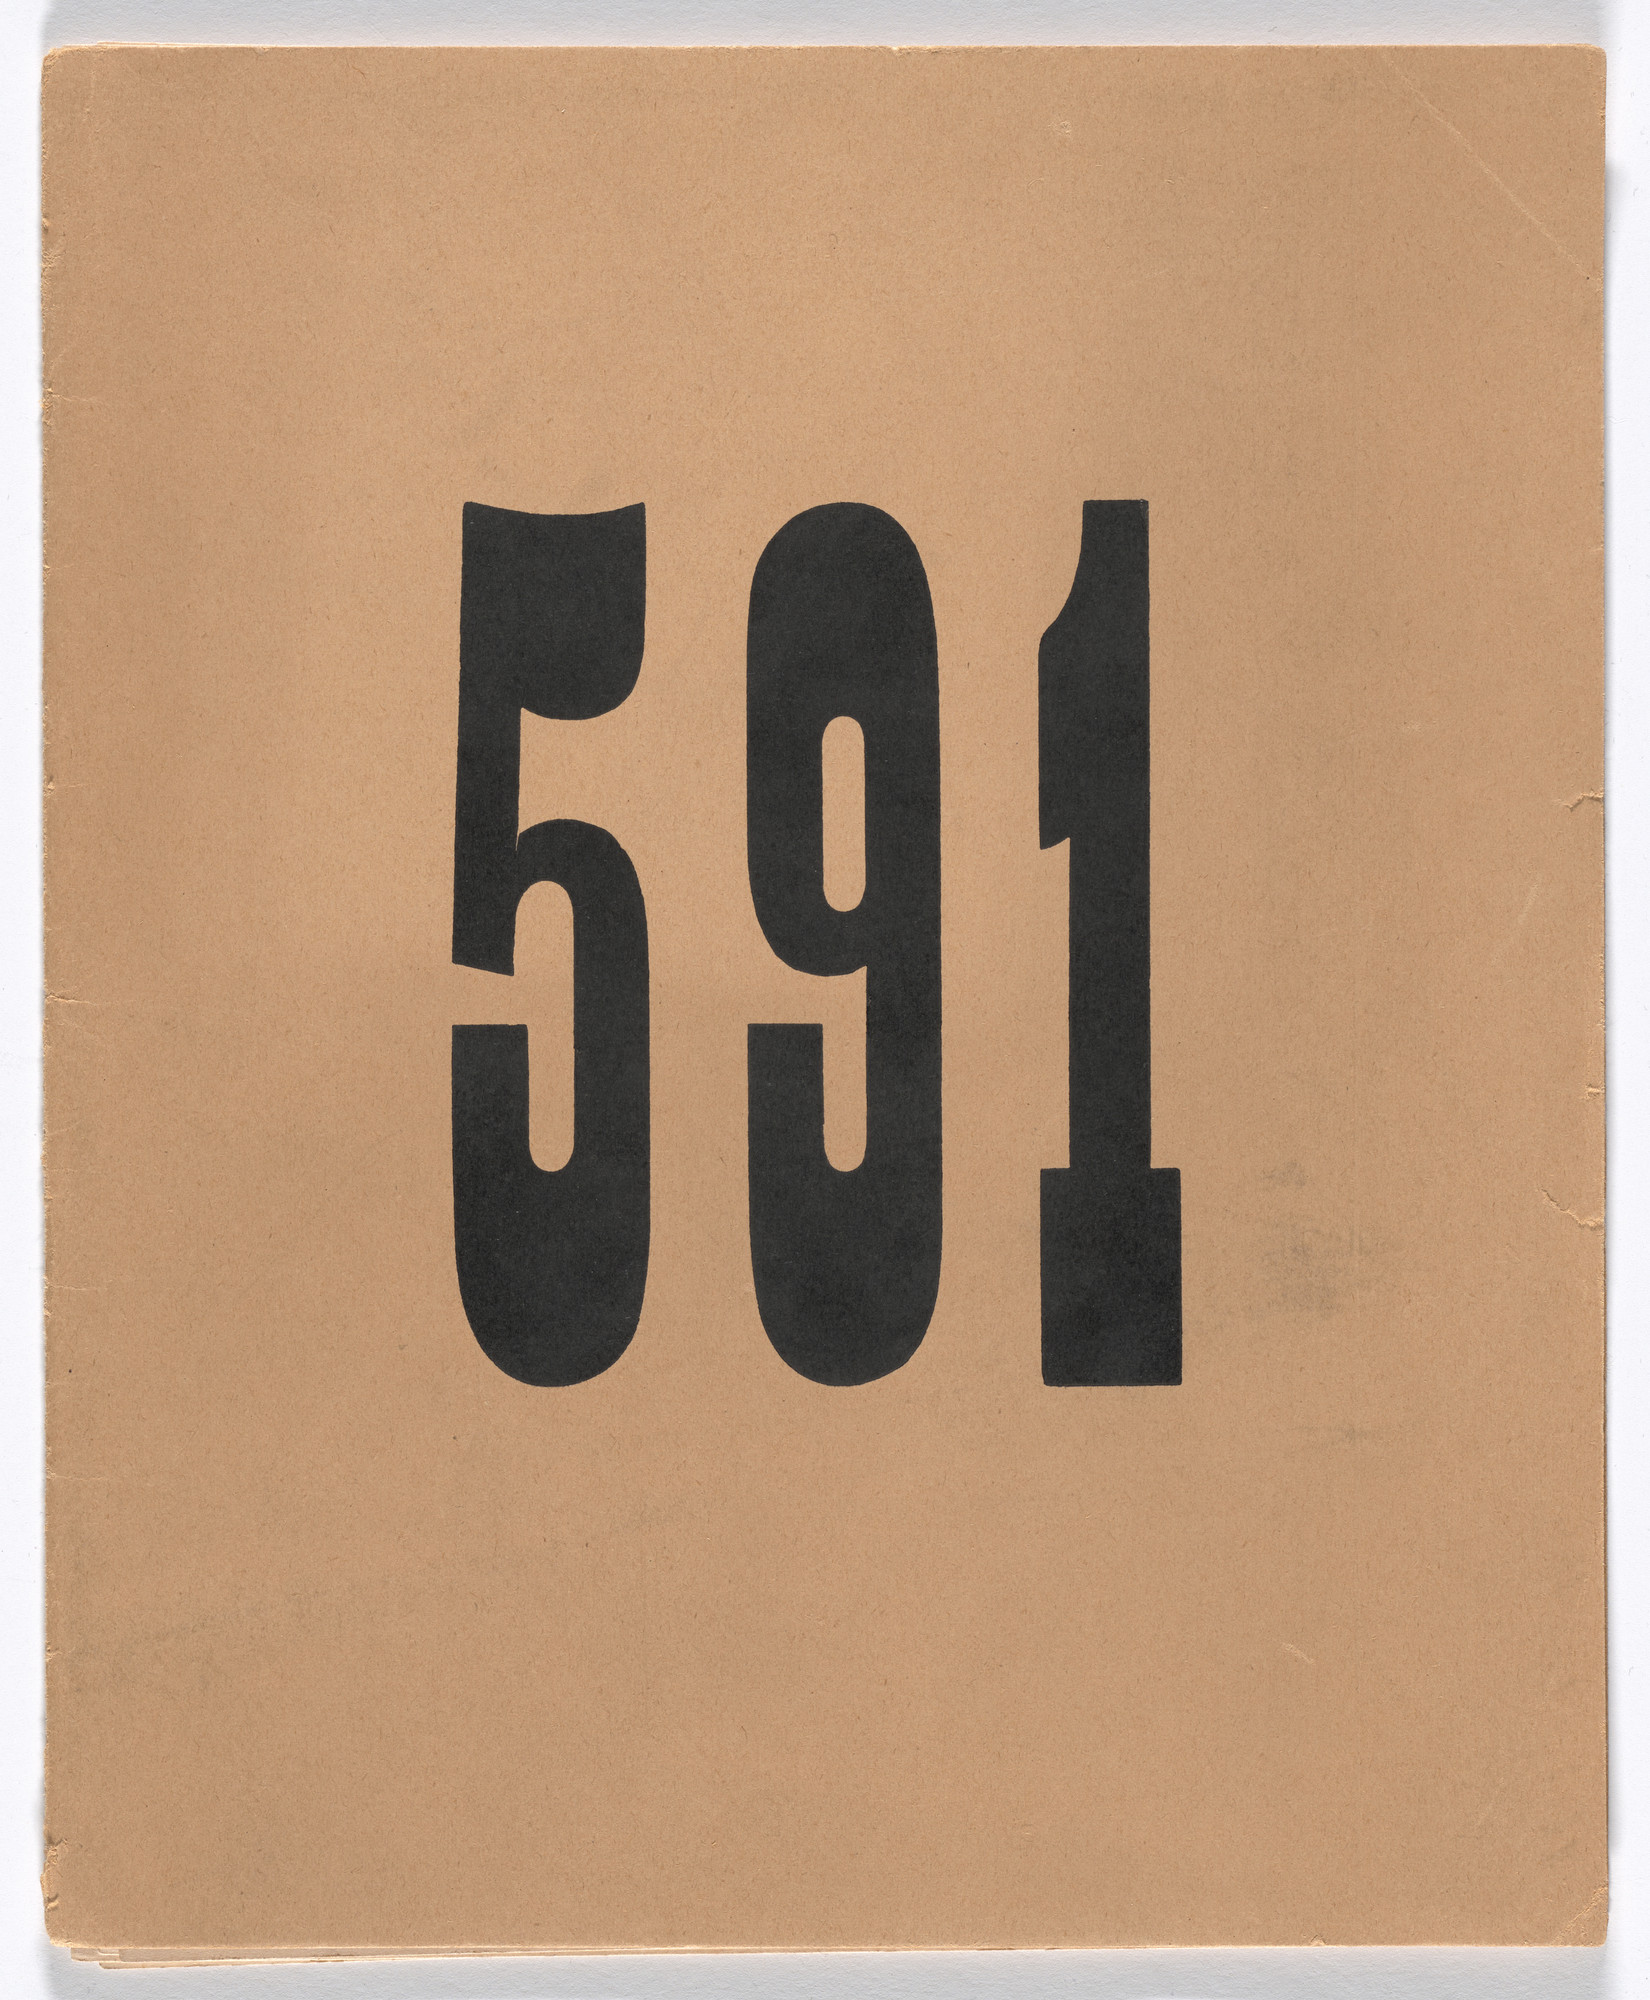 Francis Picabia. 591. 1952